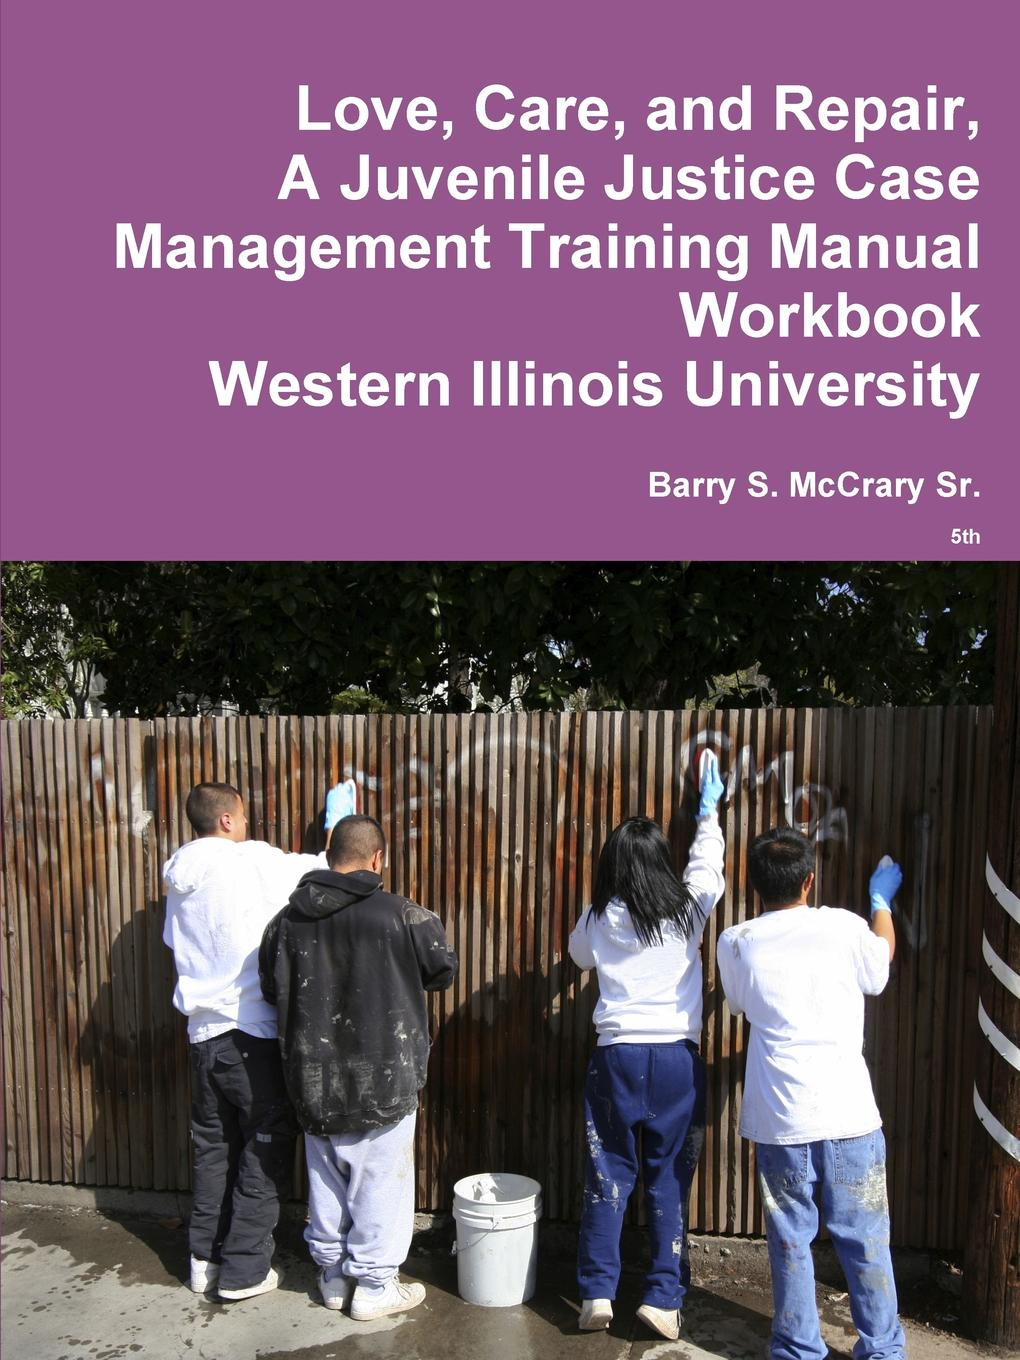 Barry S. McCrary Sr. Love, Care, and Repair, A Juvenile Justice Case Management Training Manual